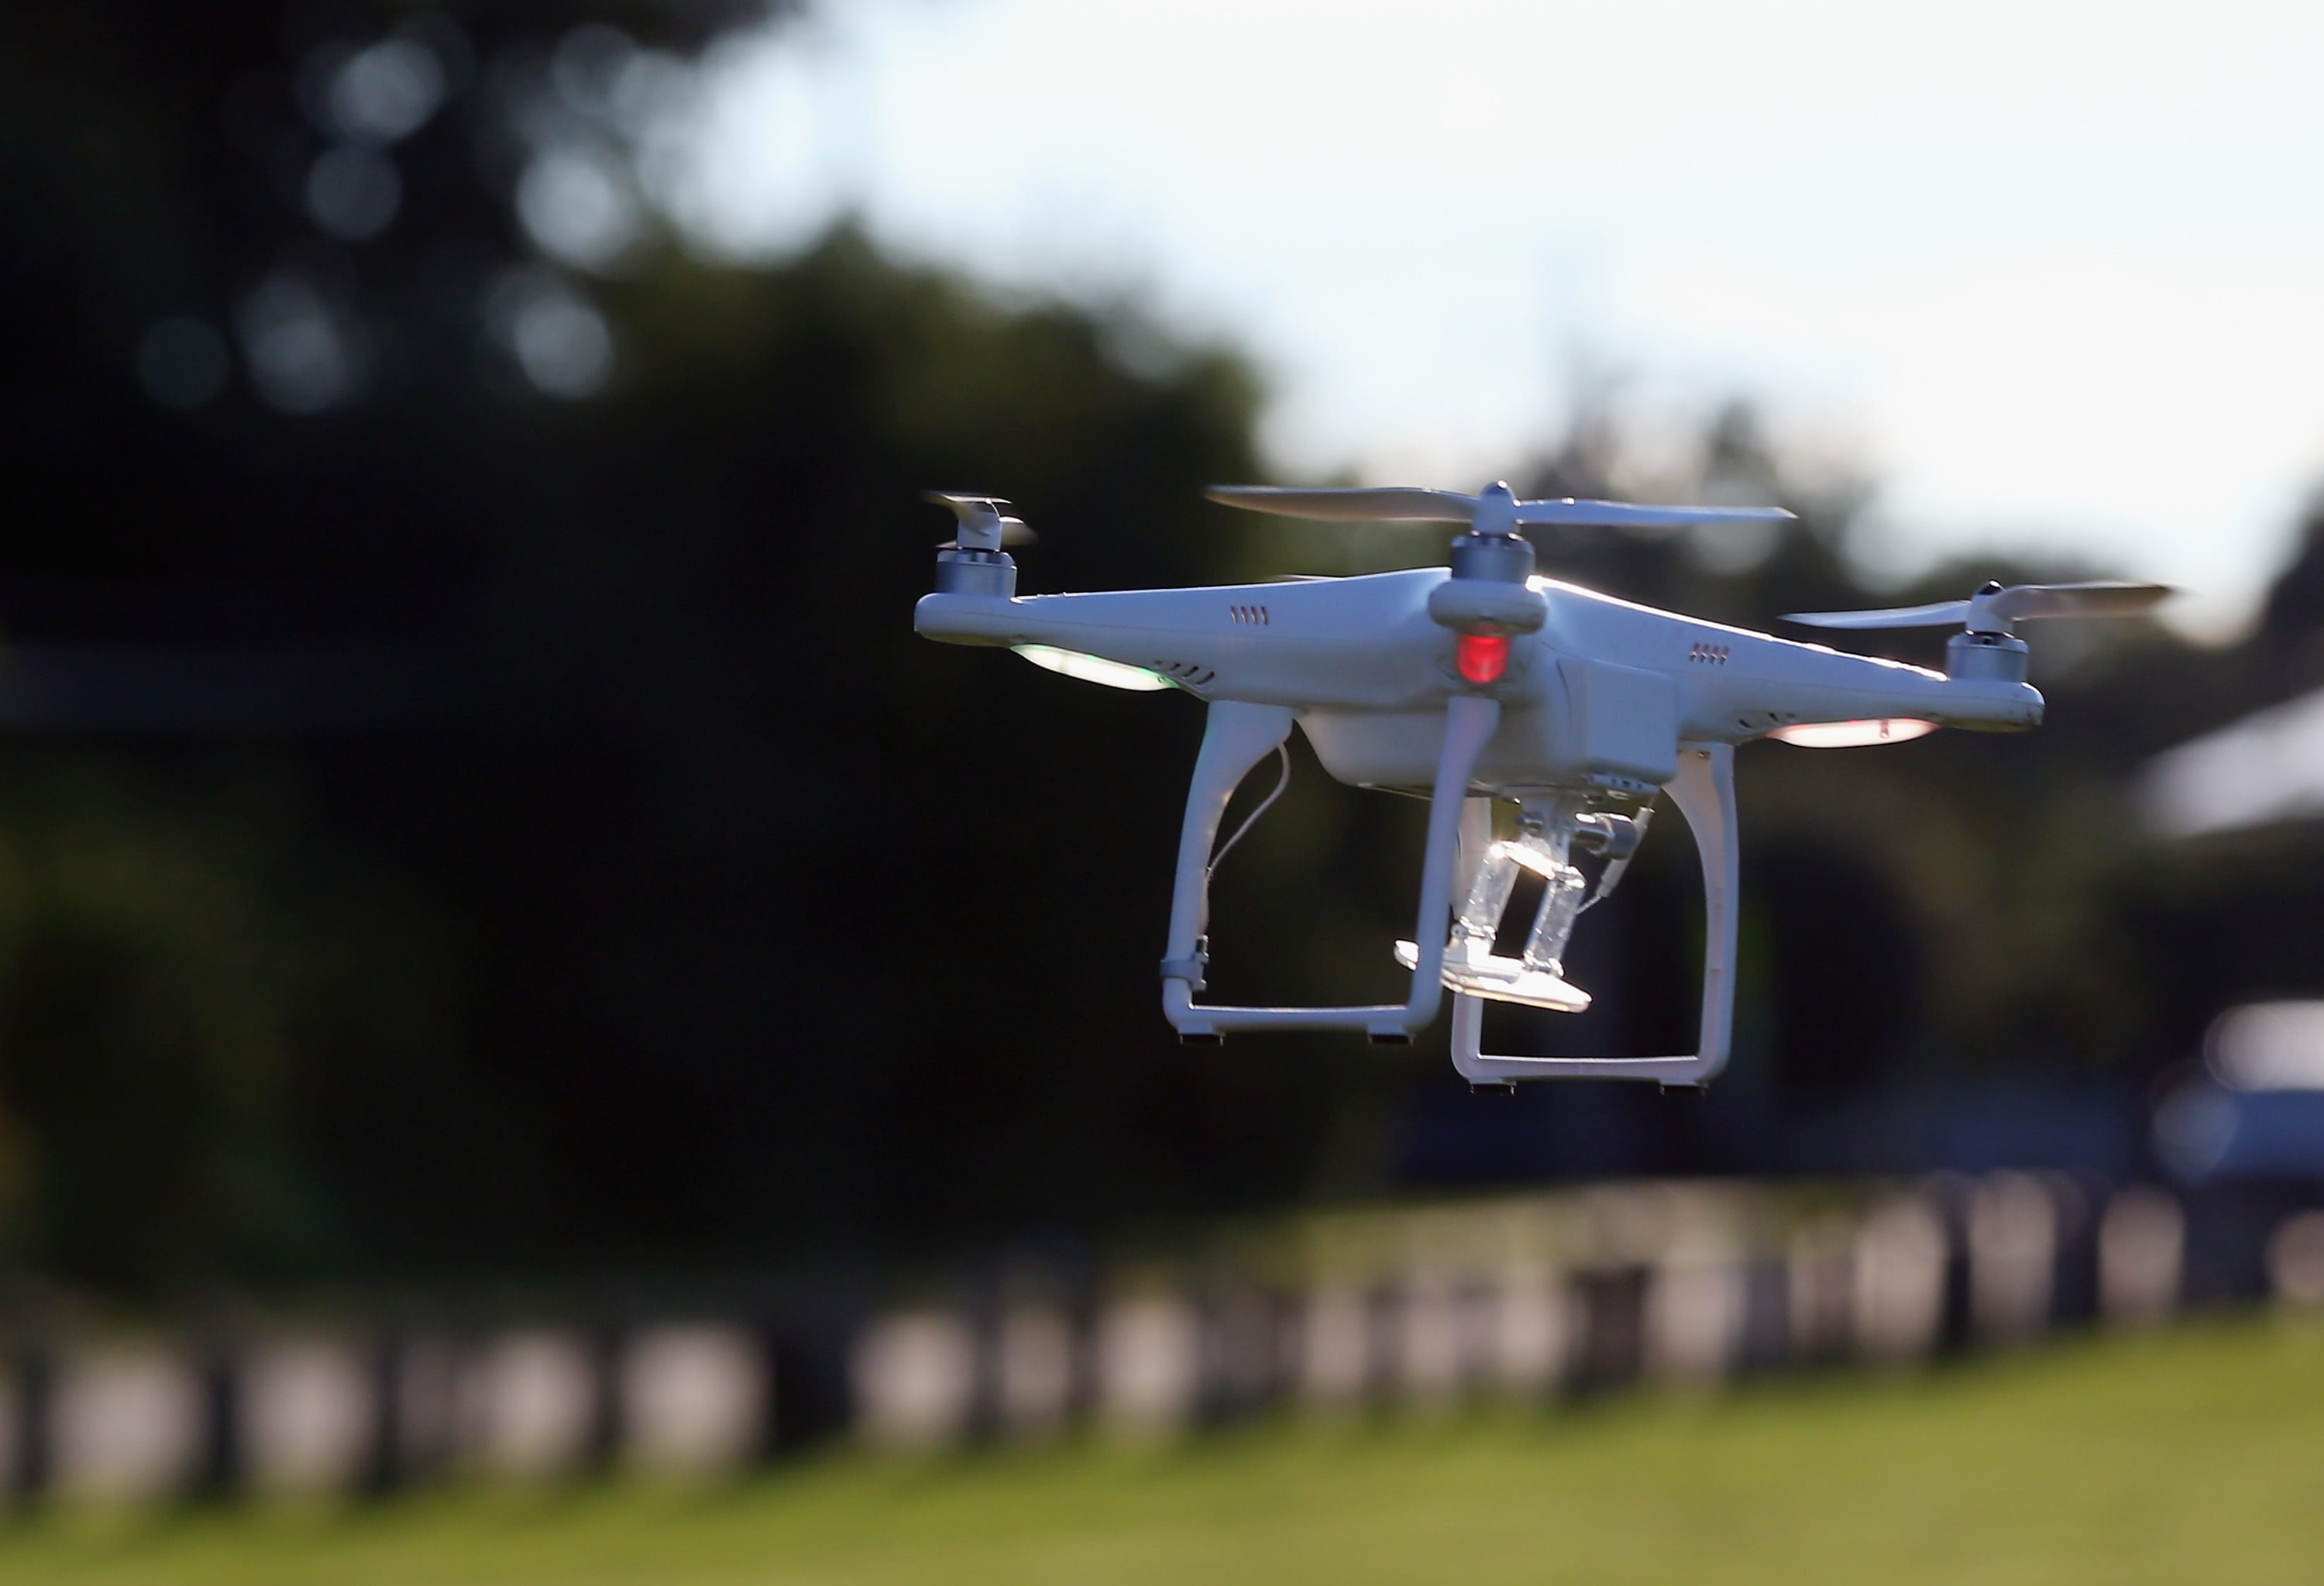 A Drone Just Flew a Kidney to a Transplant Patient for the First Time Ever